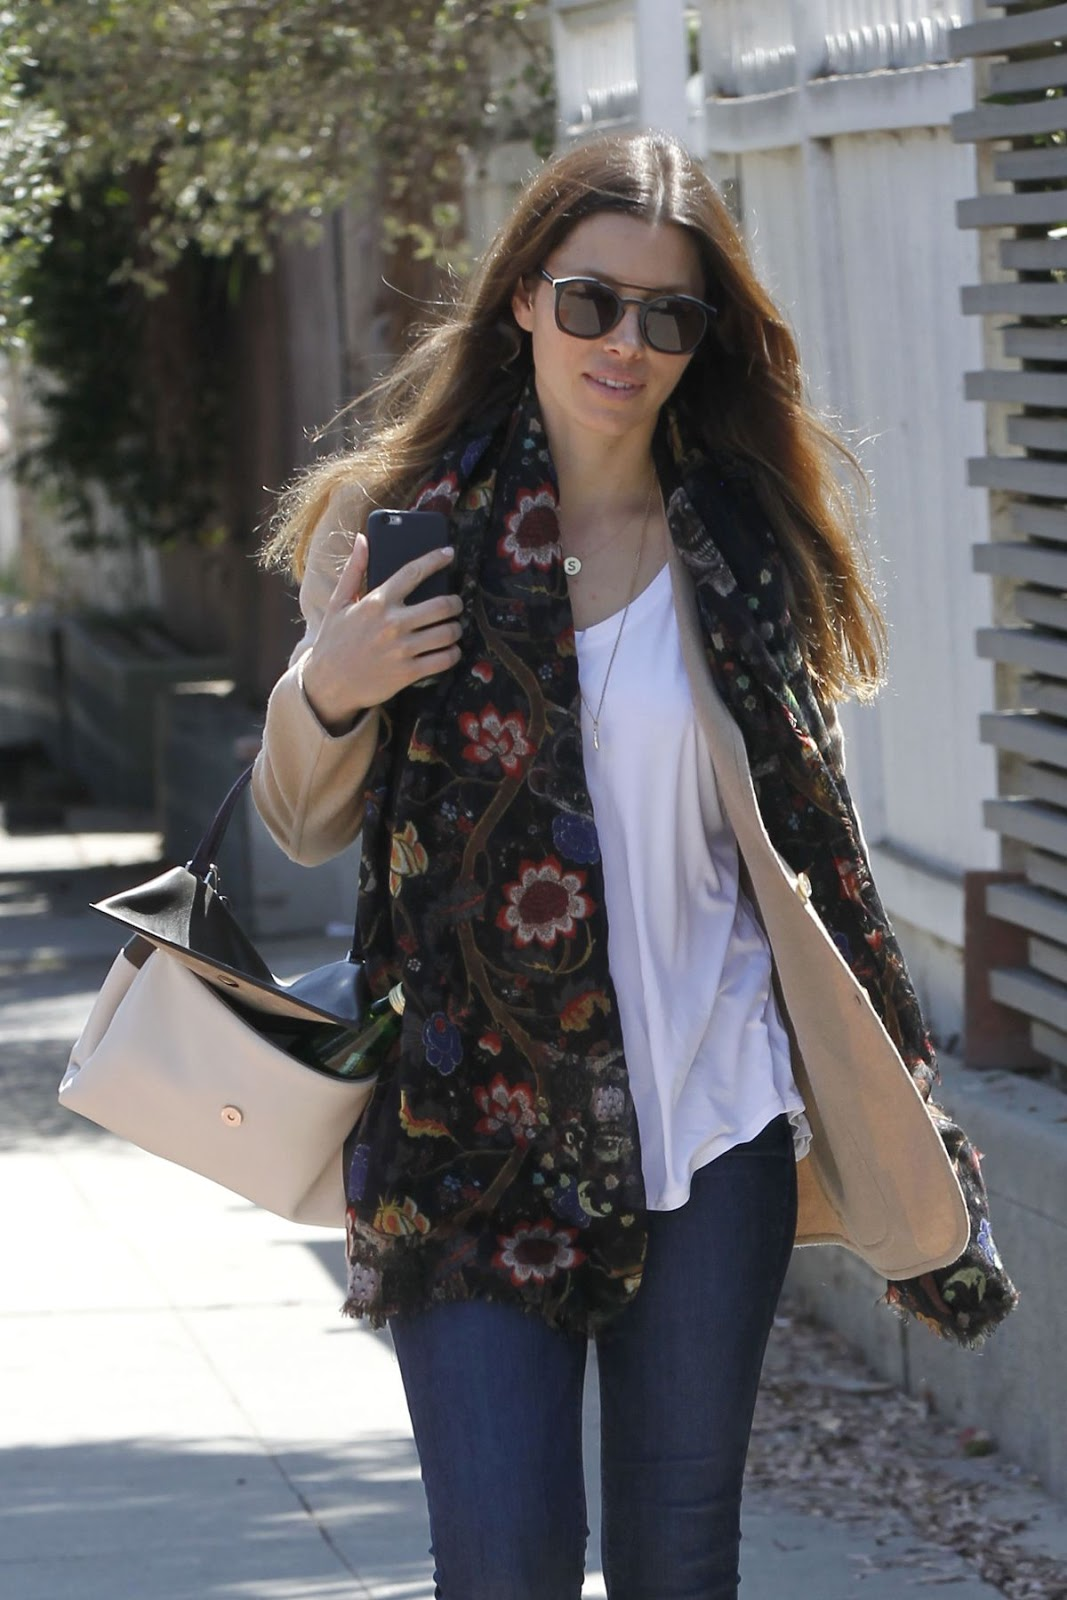 Jessica Biel Out In Venice Beach